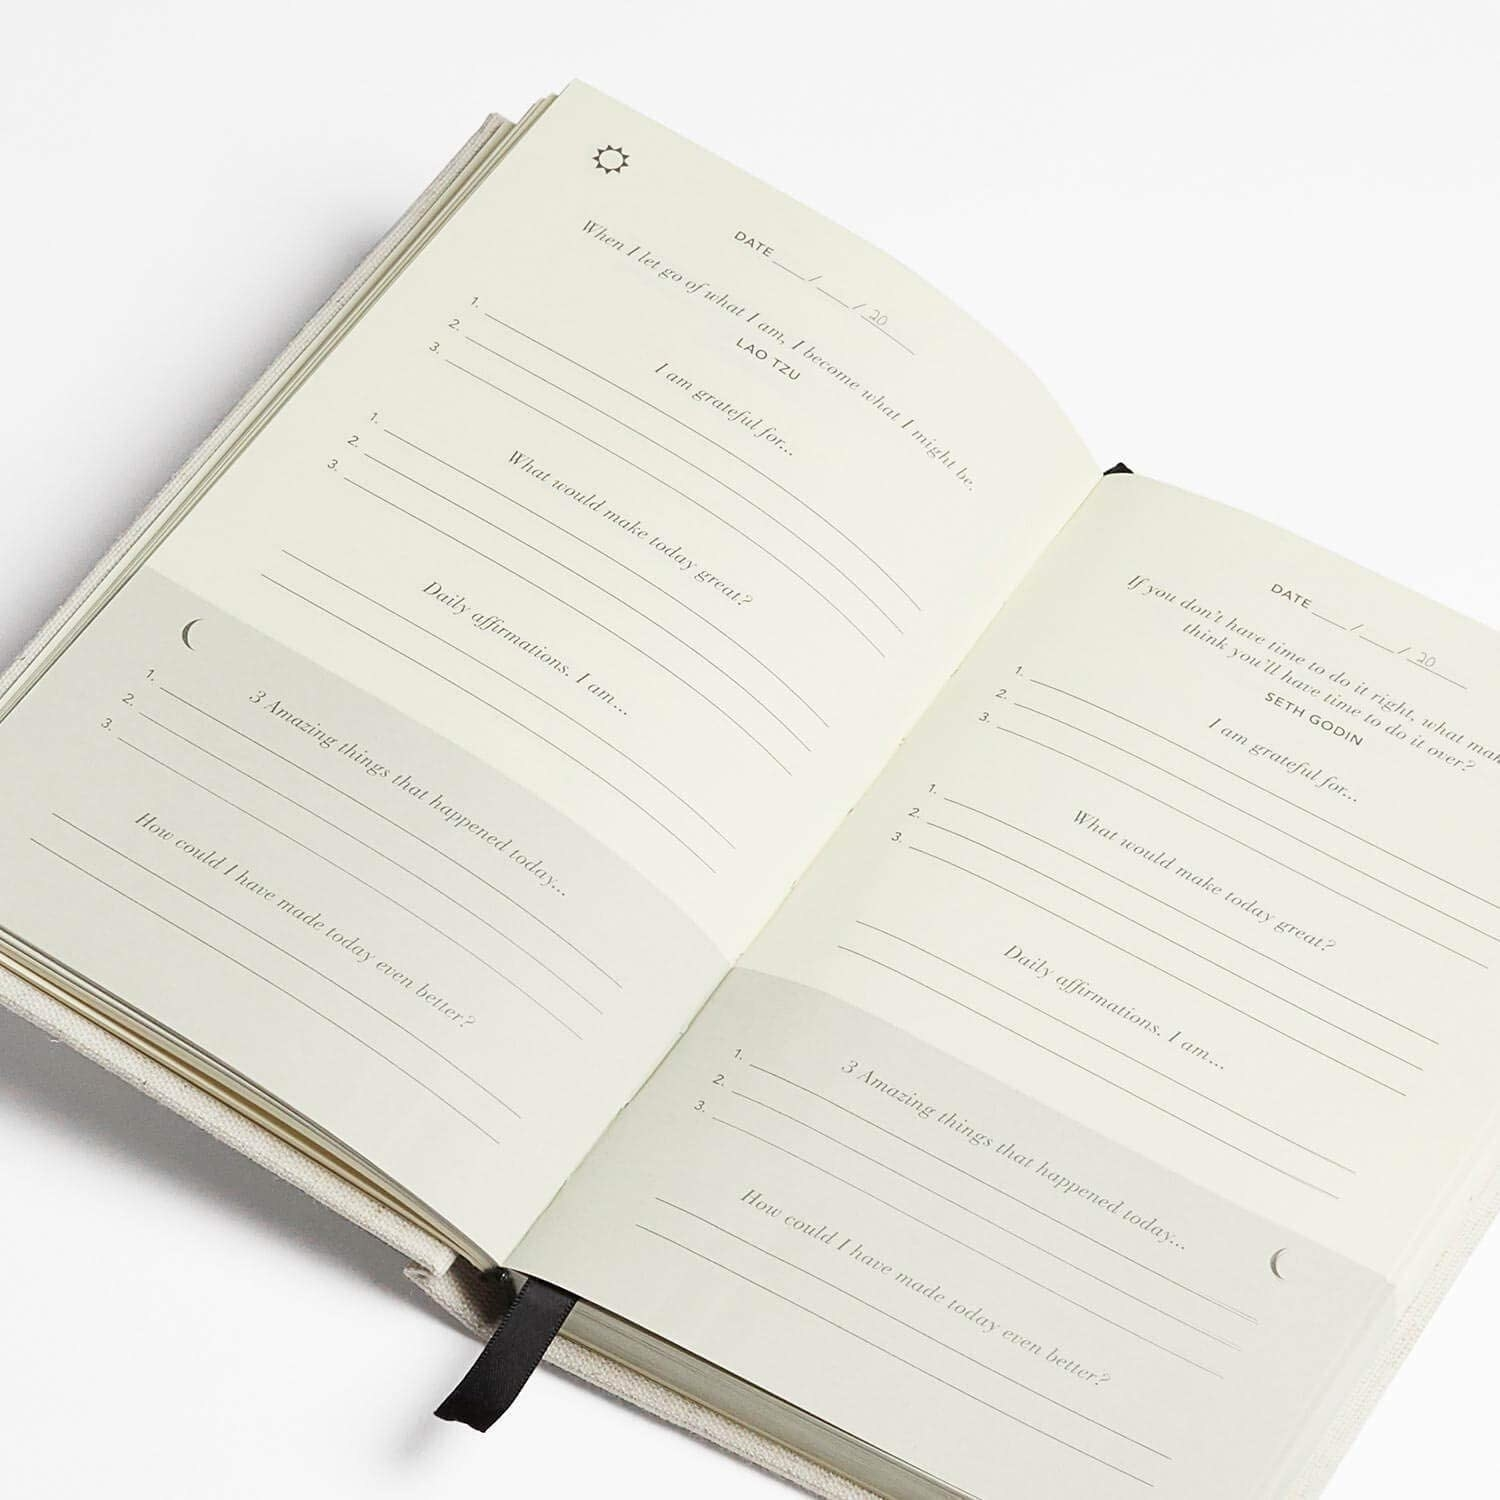 A page inside the journal with prompts written on it